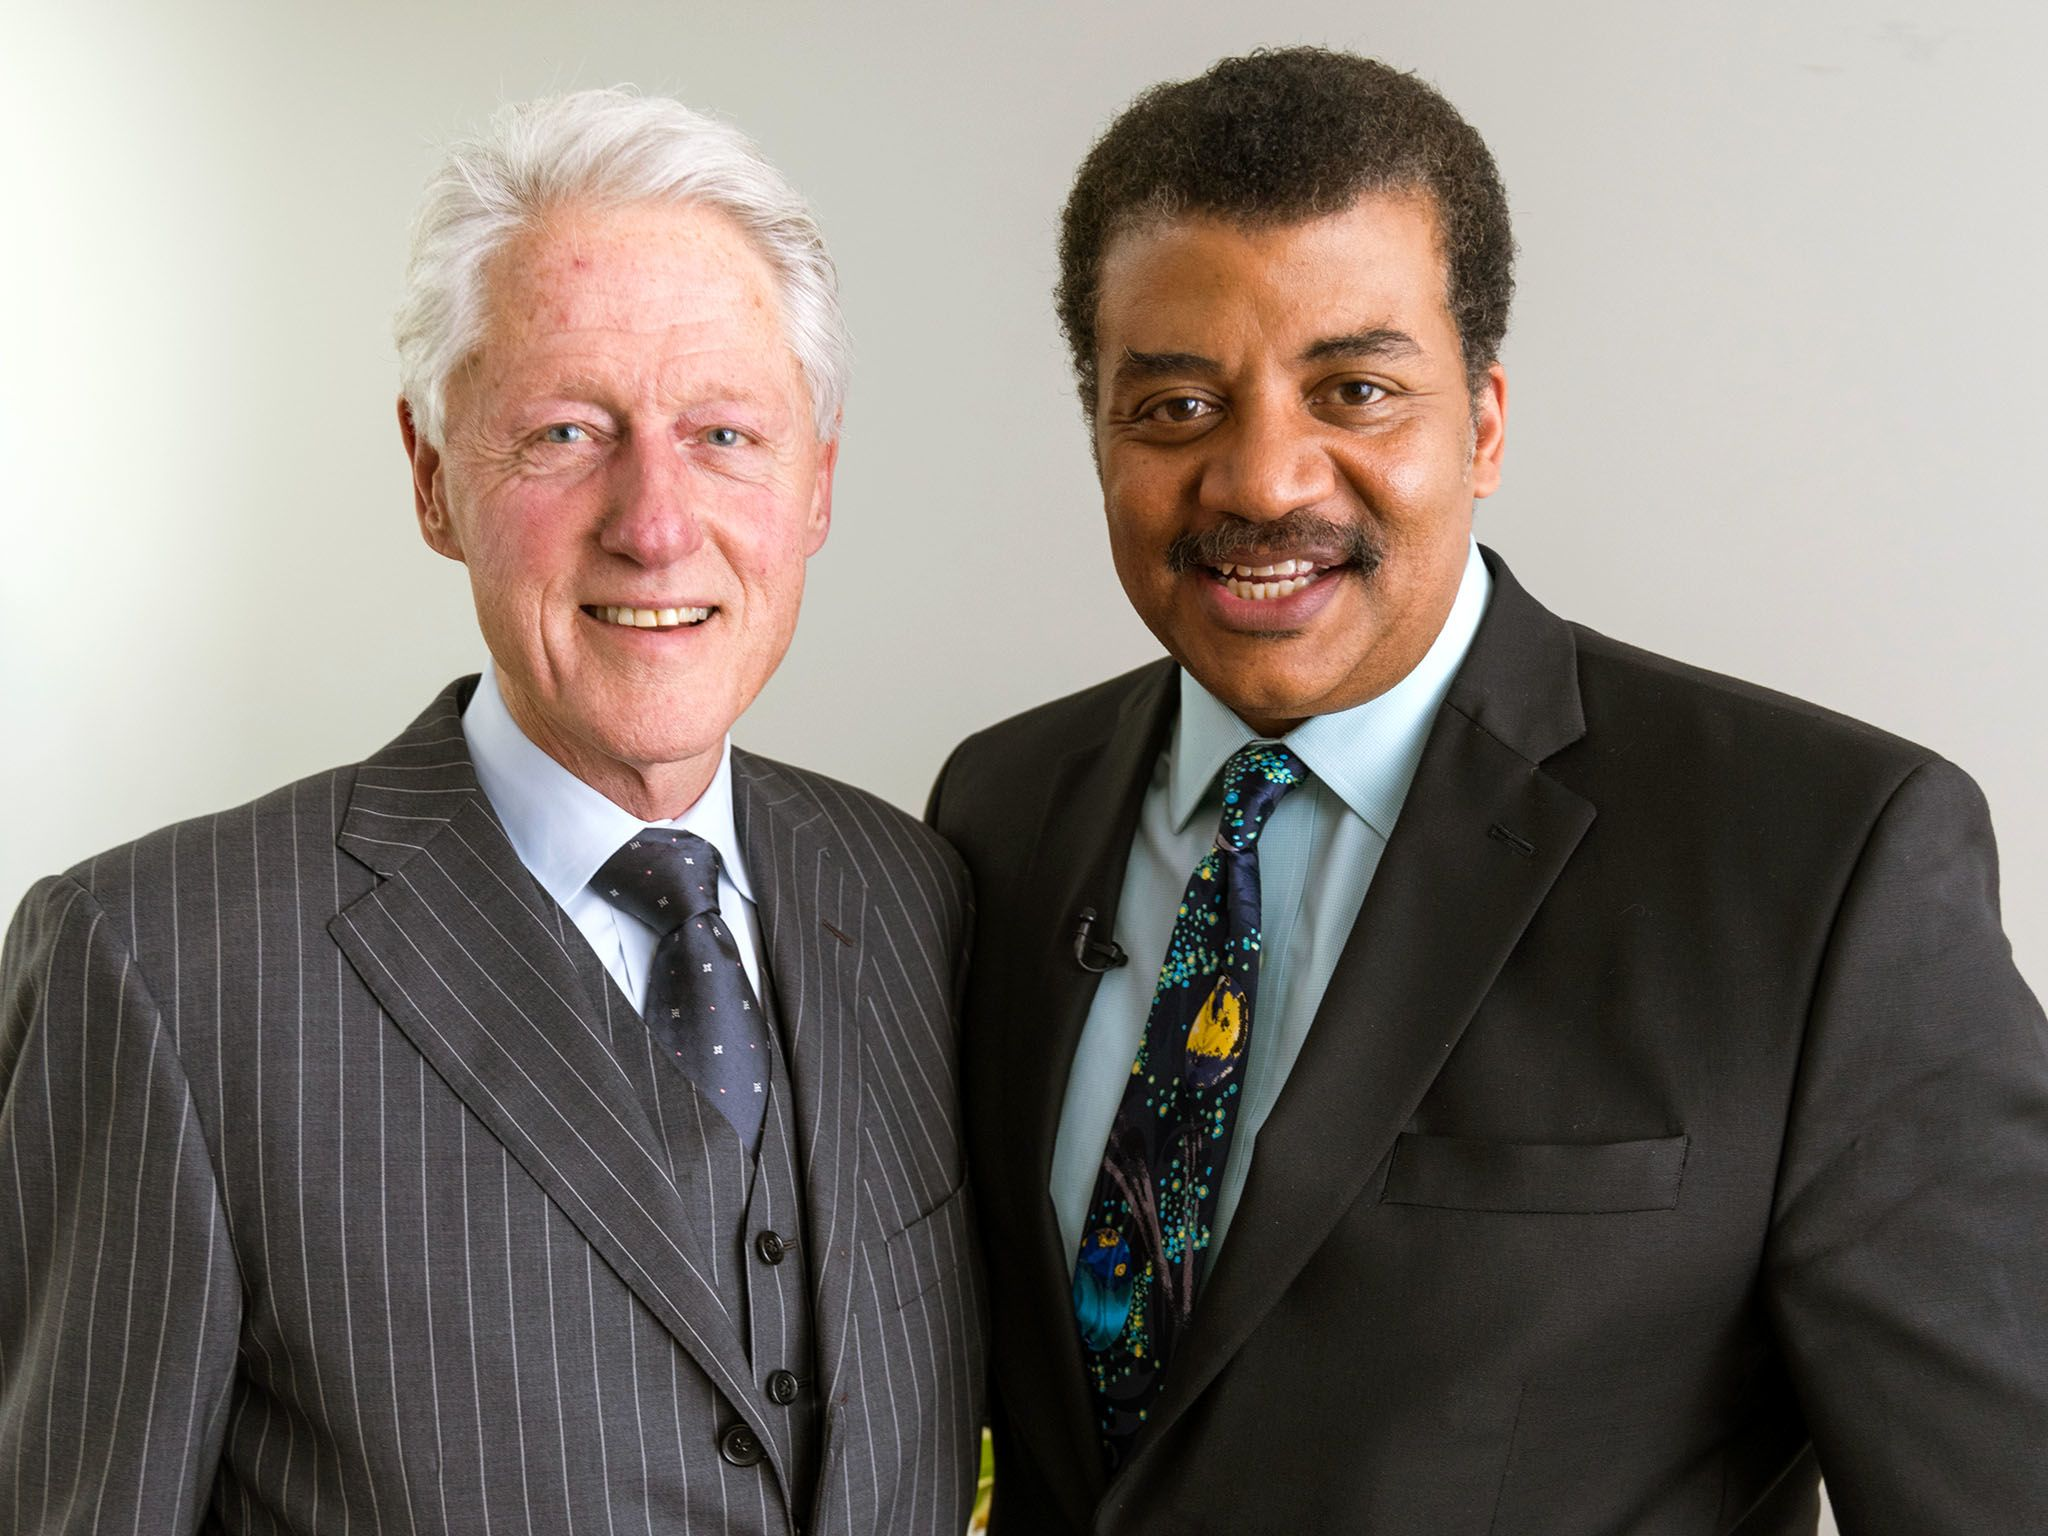 New York: Bill Clinton e Neil deGrasse Tyson. [Foto del giorno - January 2016]